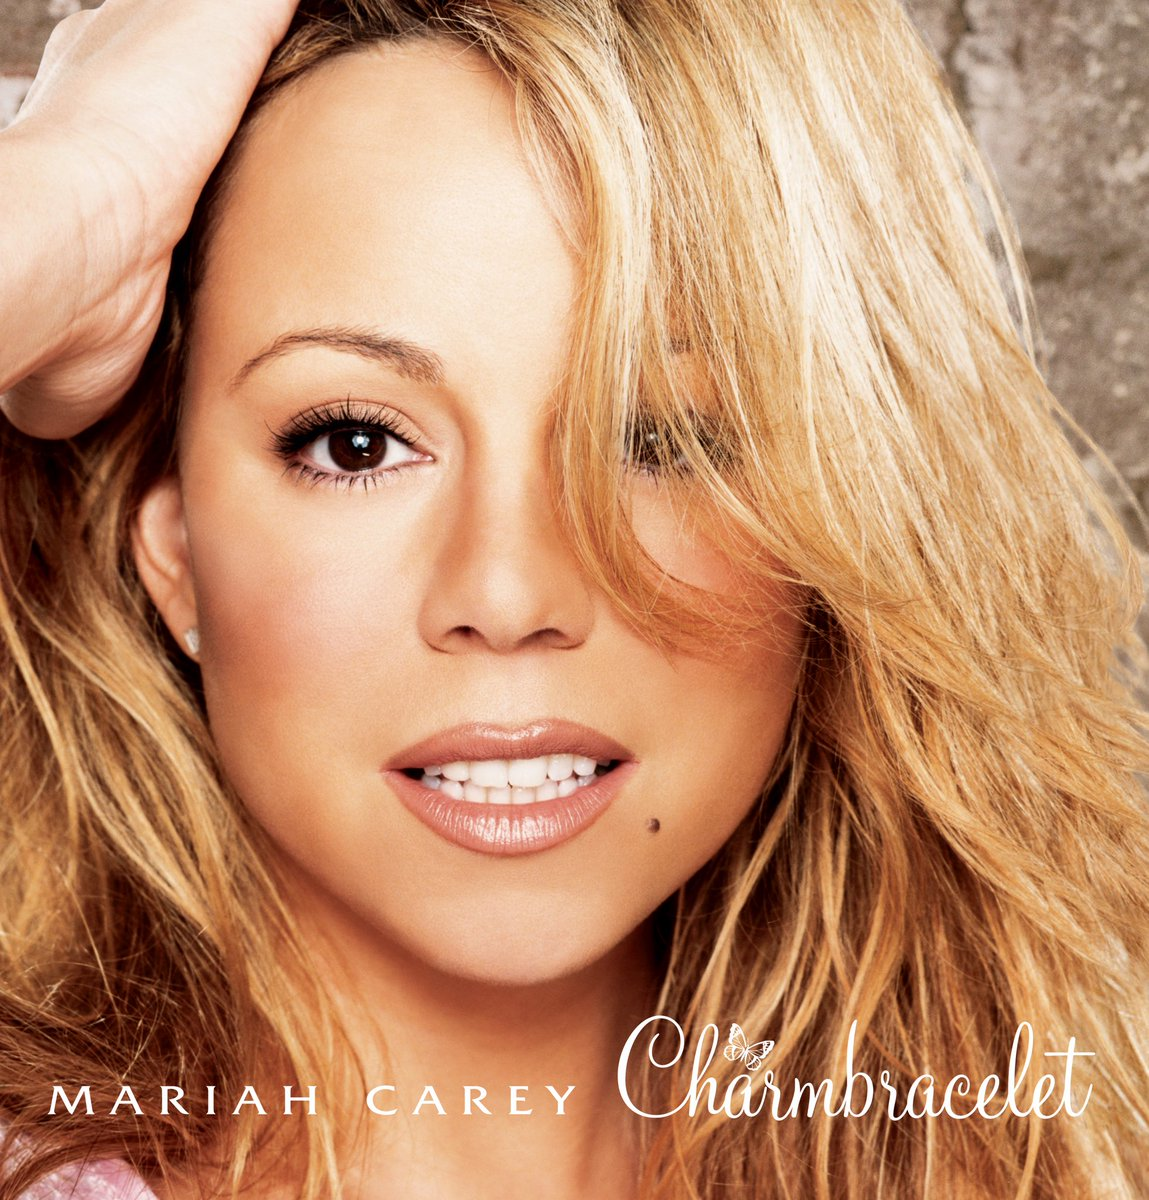 #MC30 is back with Charmbracelet digital EPs and HD videos! Yayyyy Charmie..!!! I've been told this album is sort of a fan favorite..! Subtle Invitation, My Saving Grace, Yours, The One and many others make this album a fave of mine! 💕